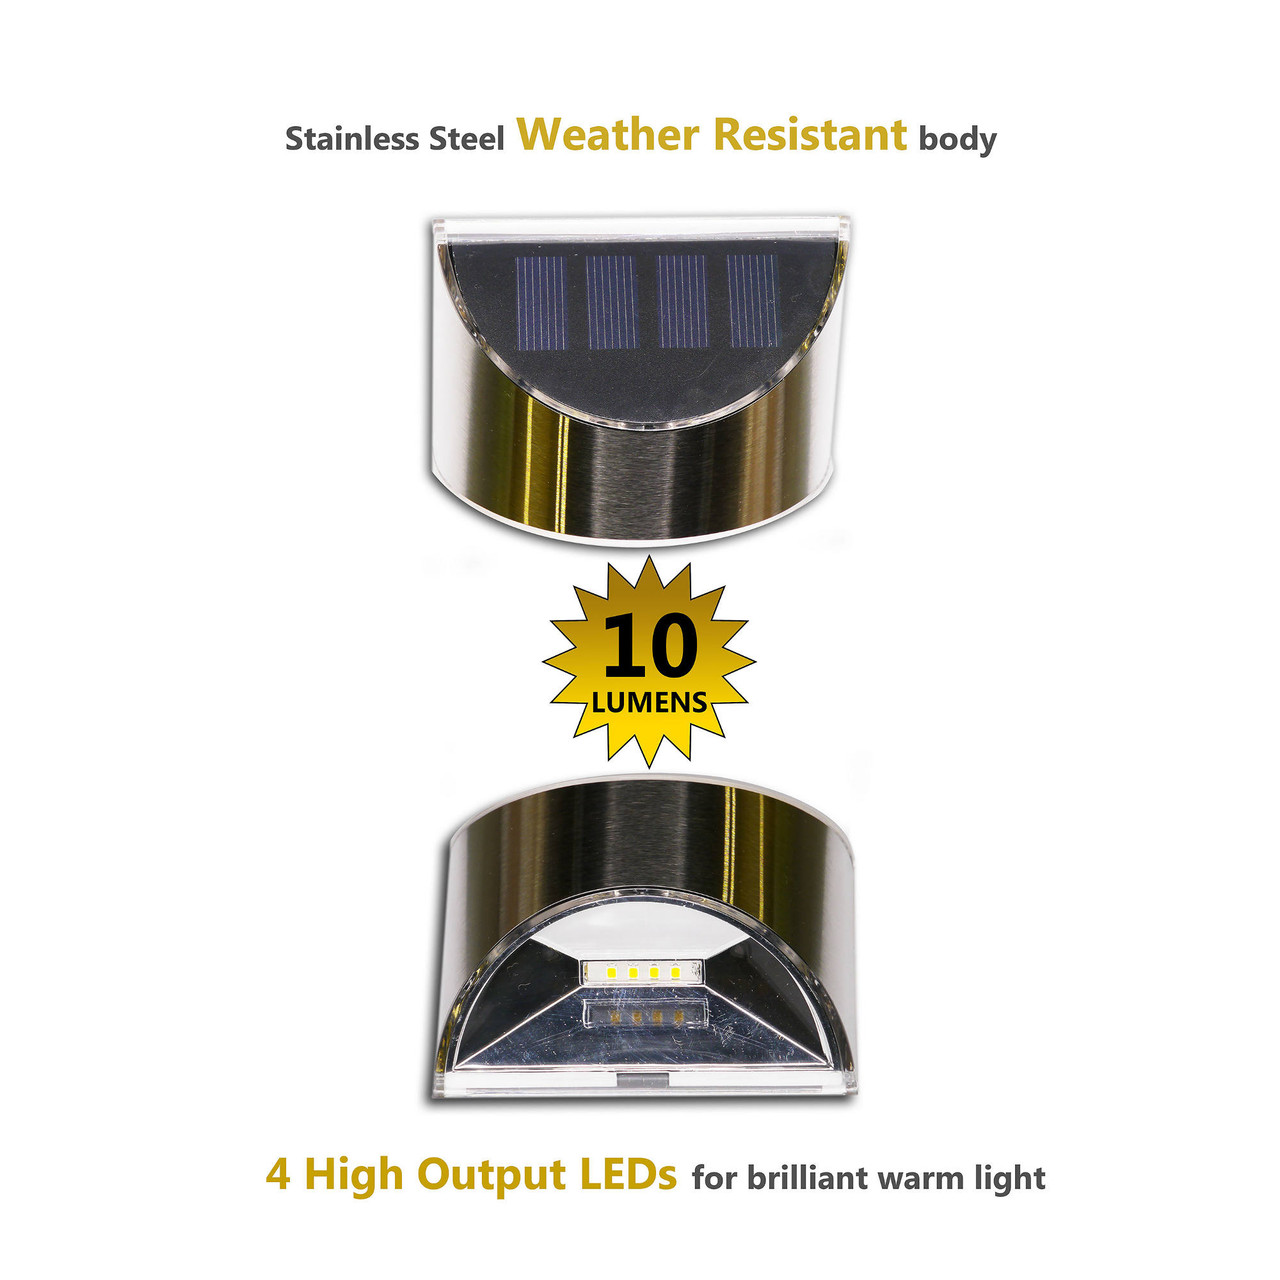 Stainless Steel Solar Deck & Wall Light DLS900 Graphic